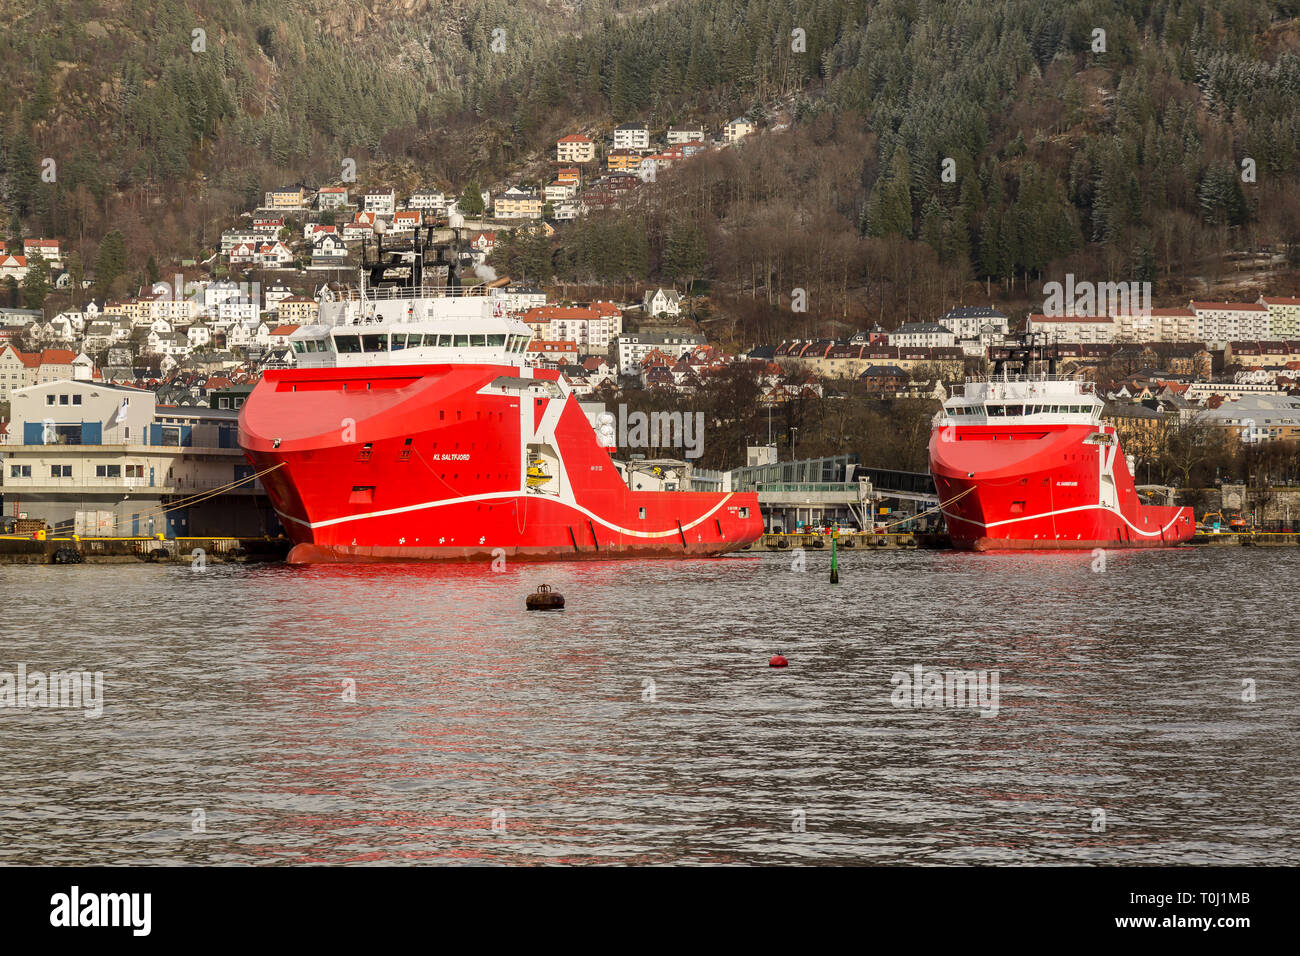 The Norwegian Off Shore Supply Ships KL Saltfjord and KL Sandefjord in the sea port of Bergen in Norway. - Stock Image